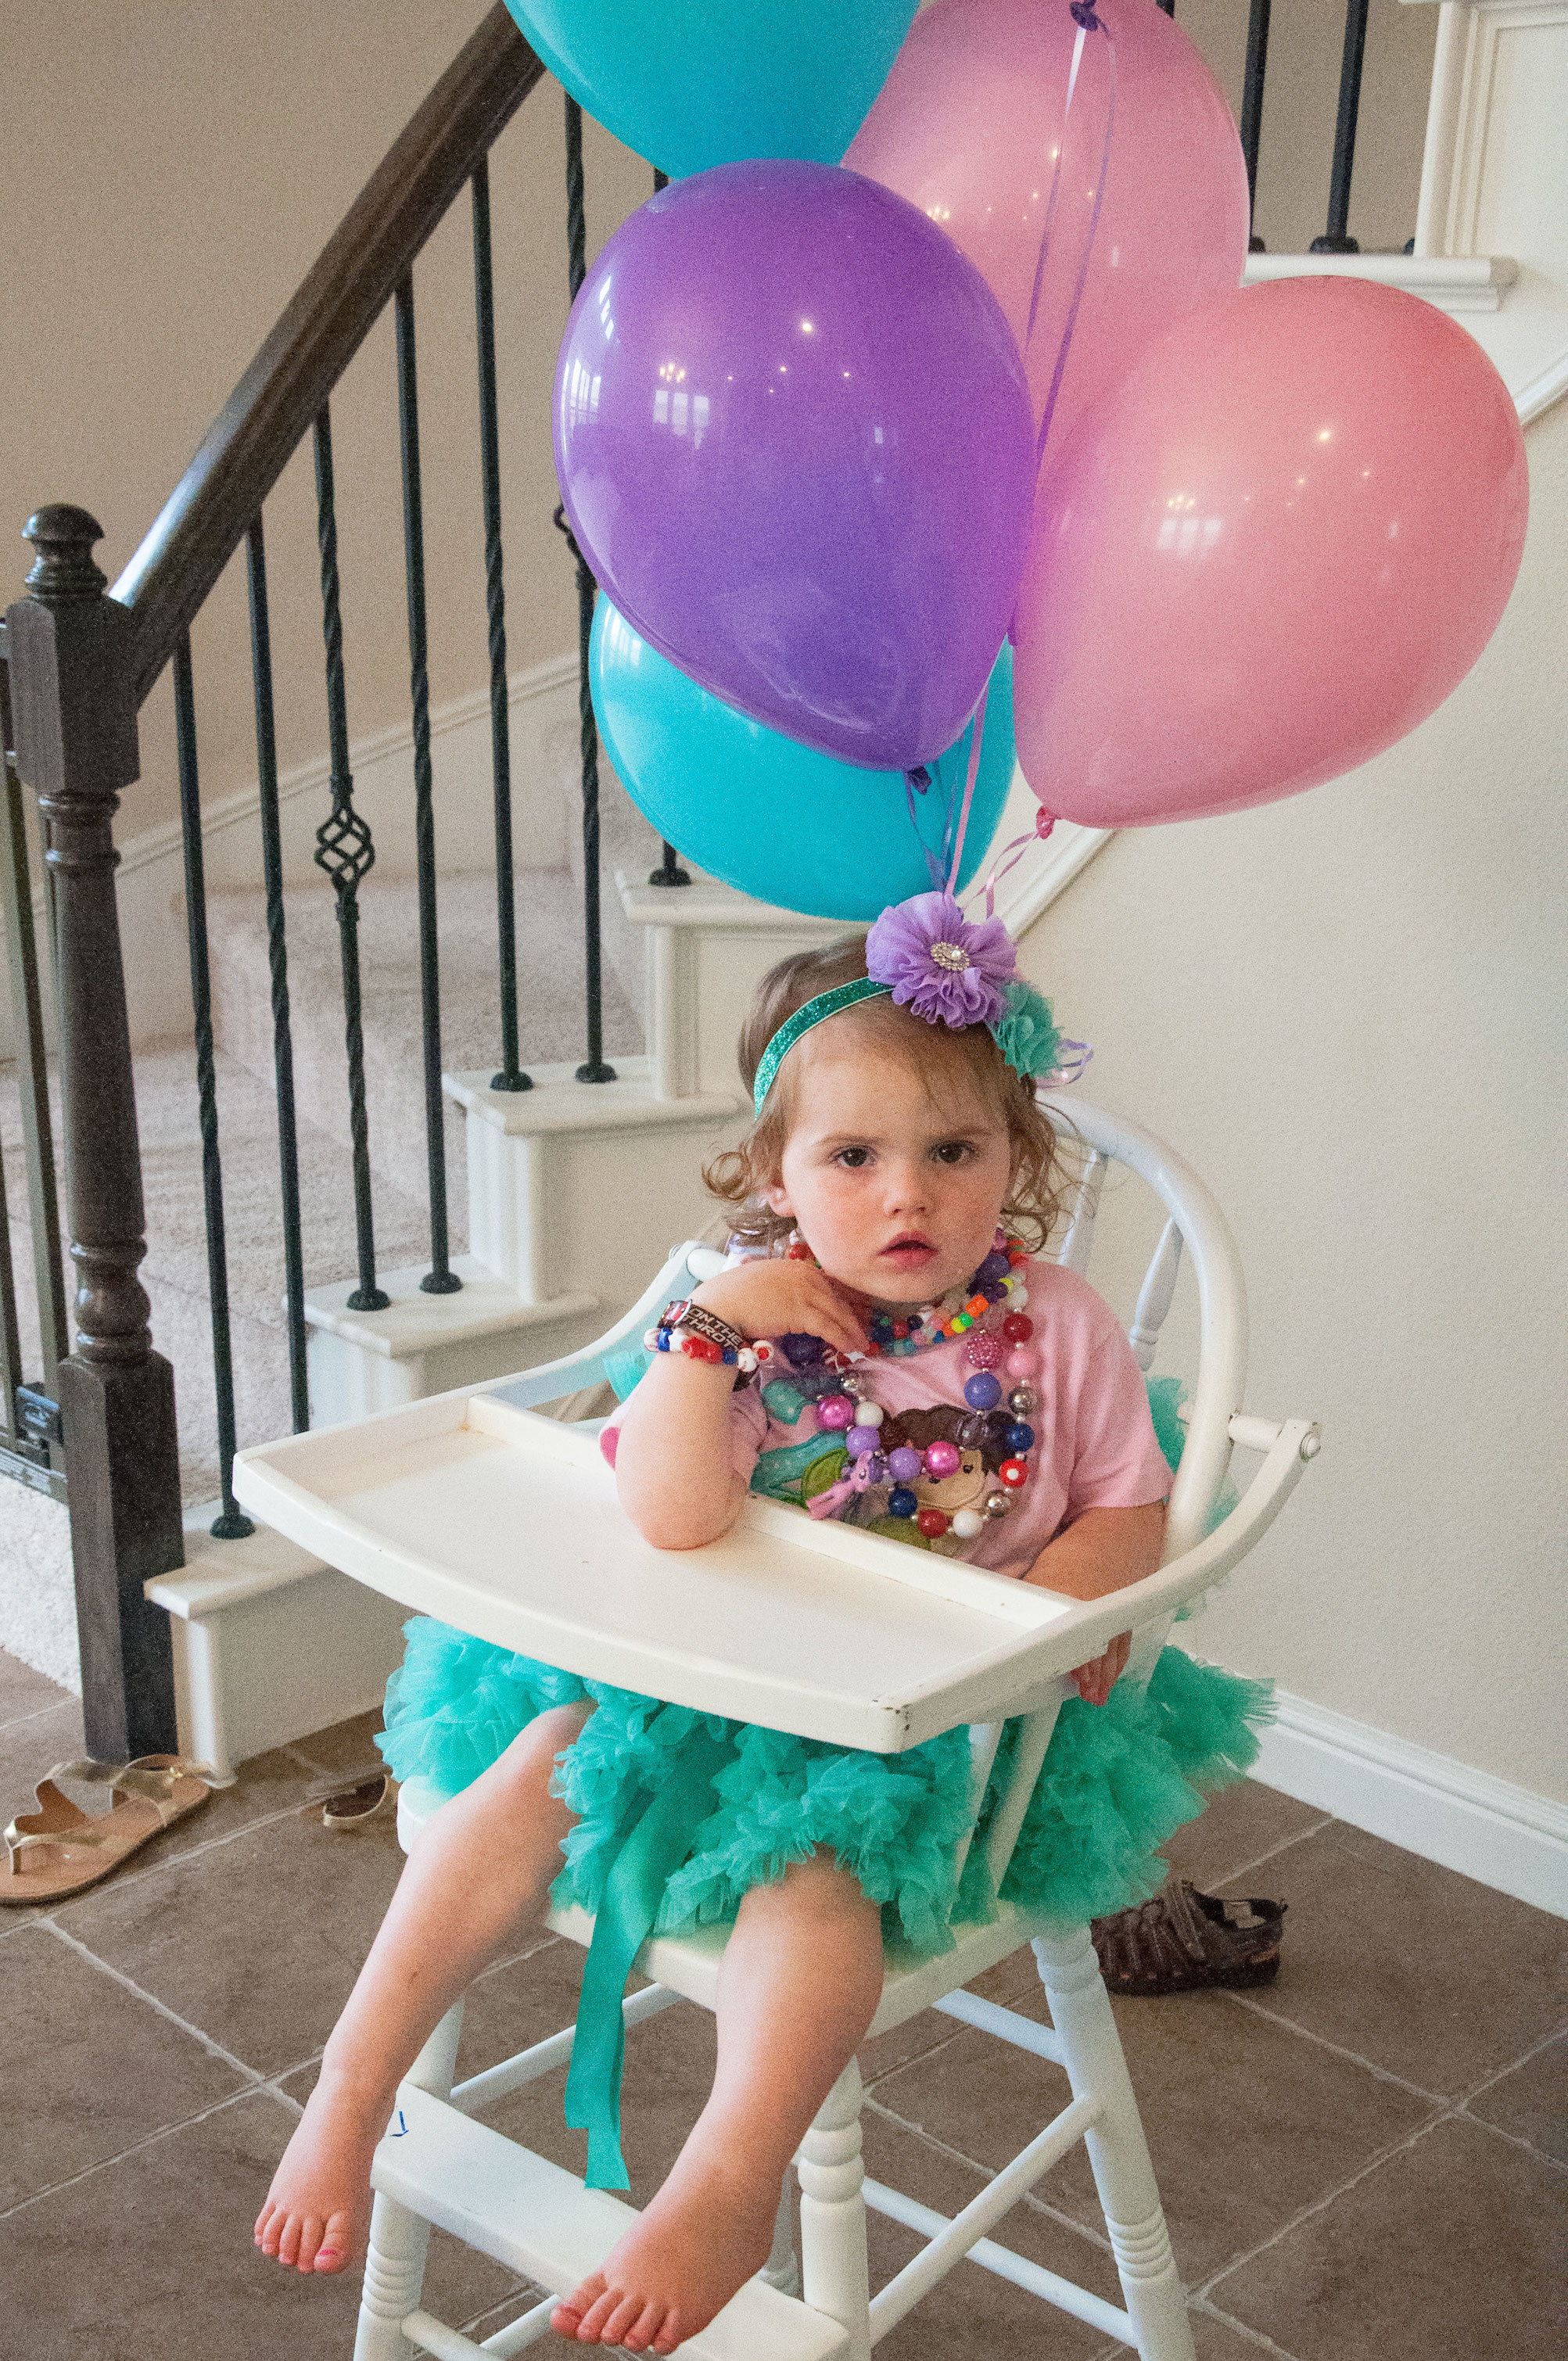 Mermaid shirt and balloons